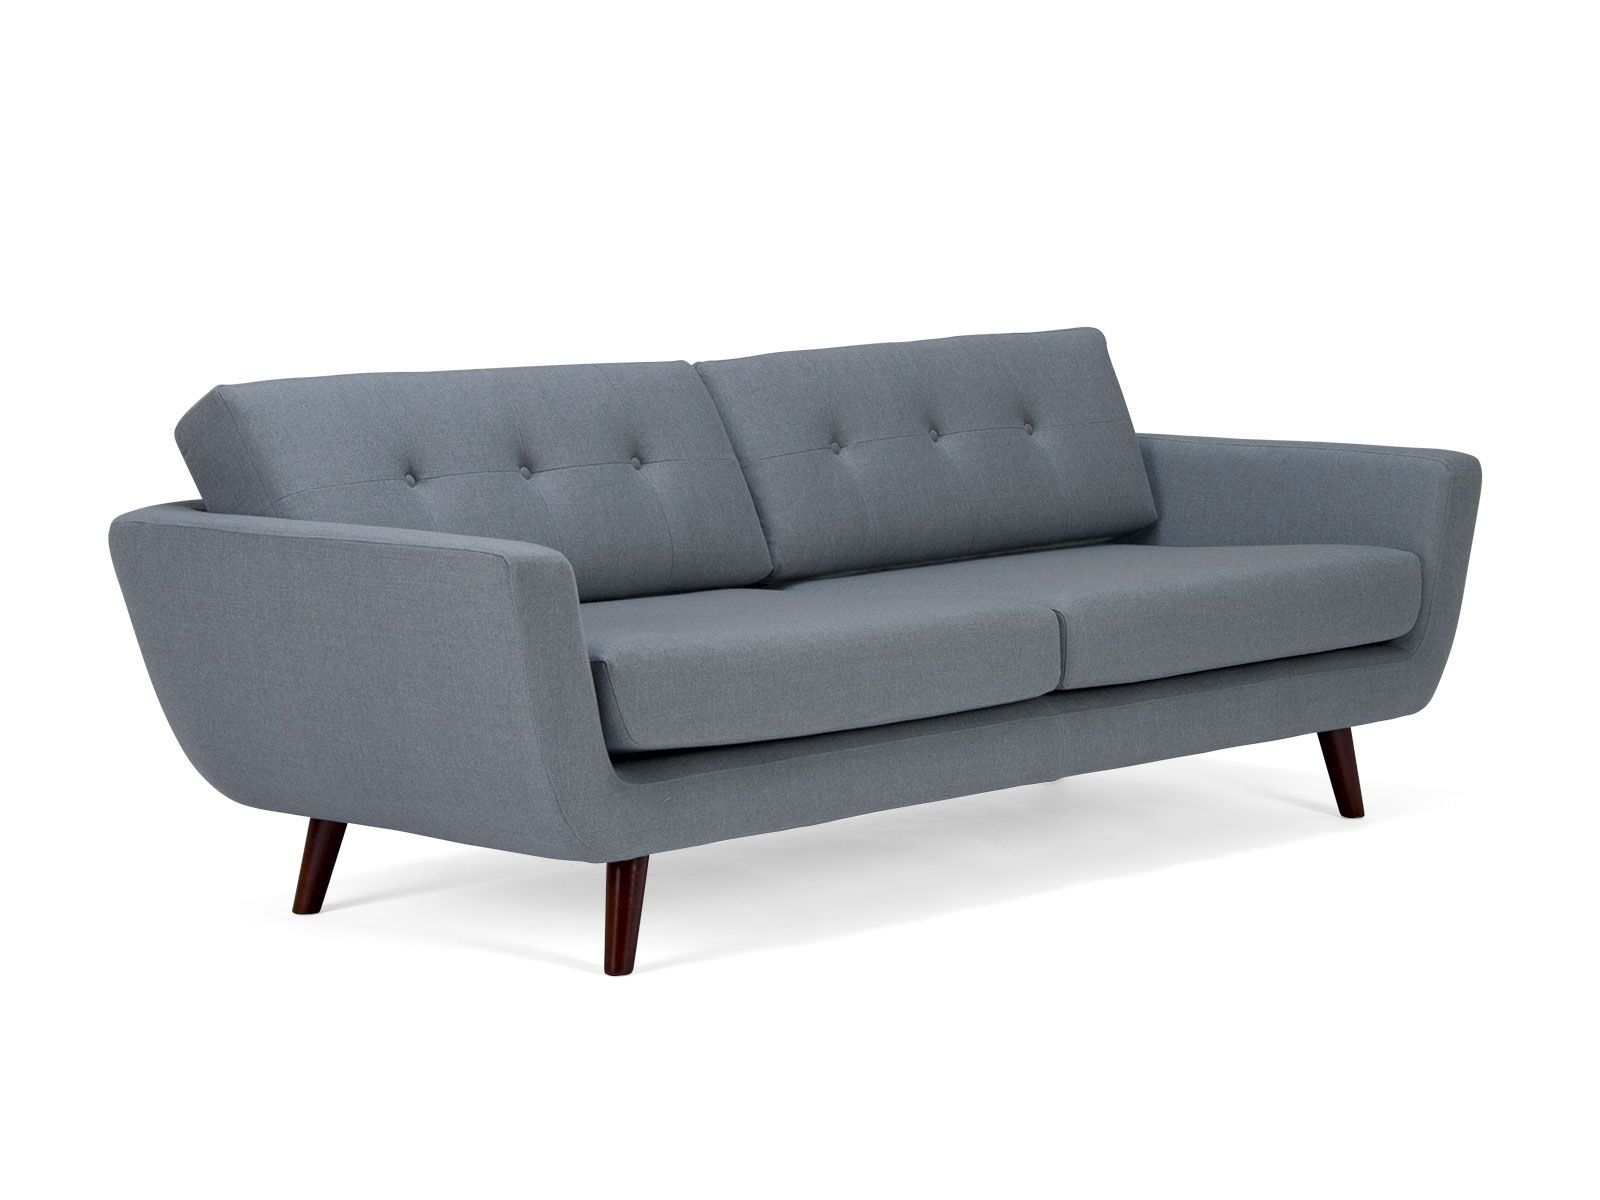 Retro Möbel 70er Retro Sofa 3 Sitzer Vintage Couch Deco Pinterest